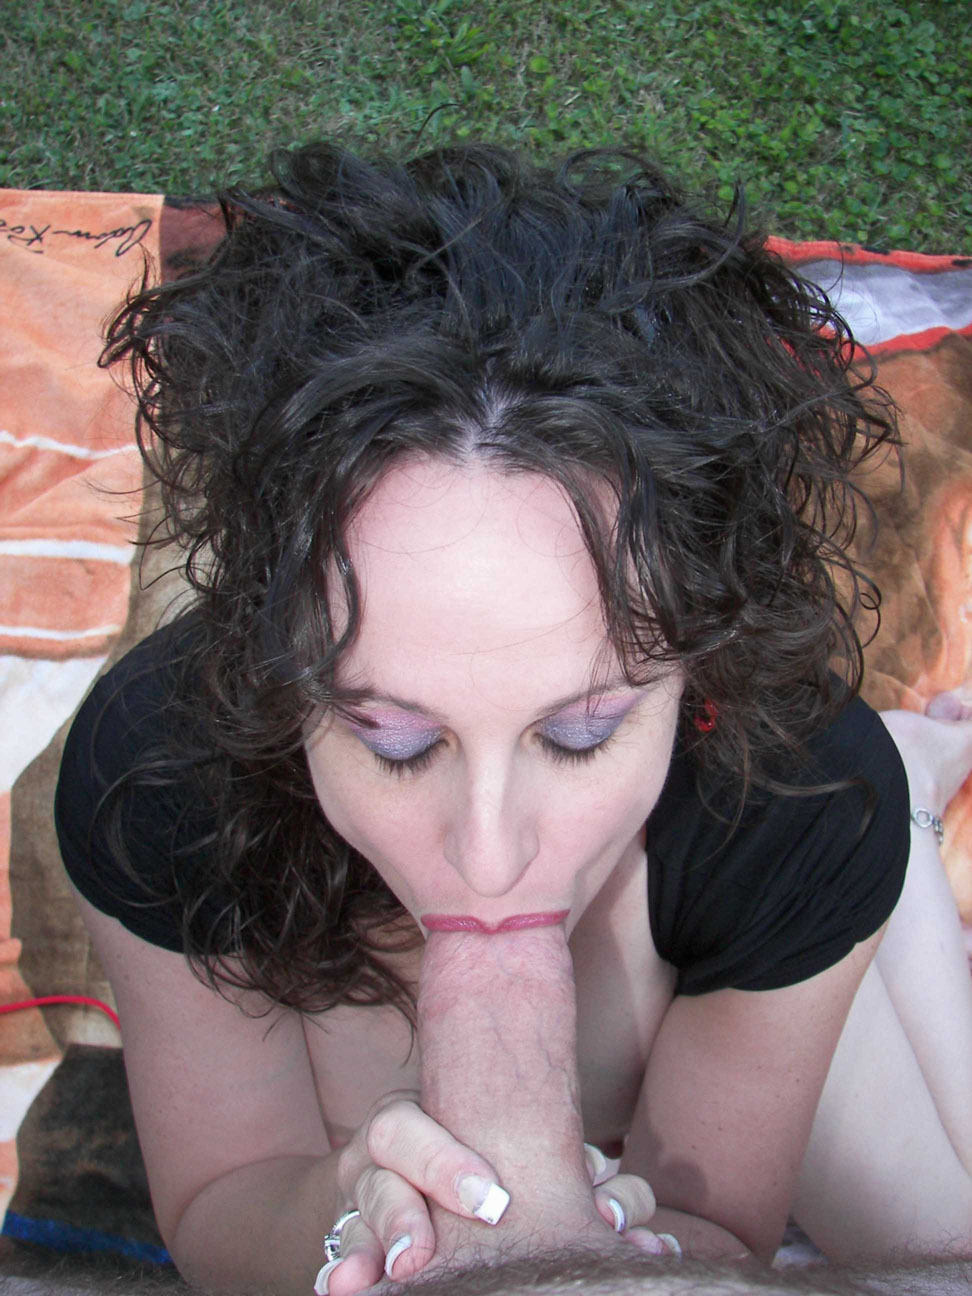 kinkywifemia:  mature cock whore Mia at it again.